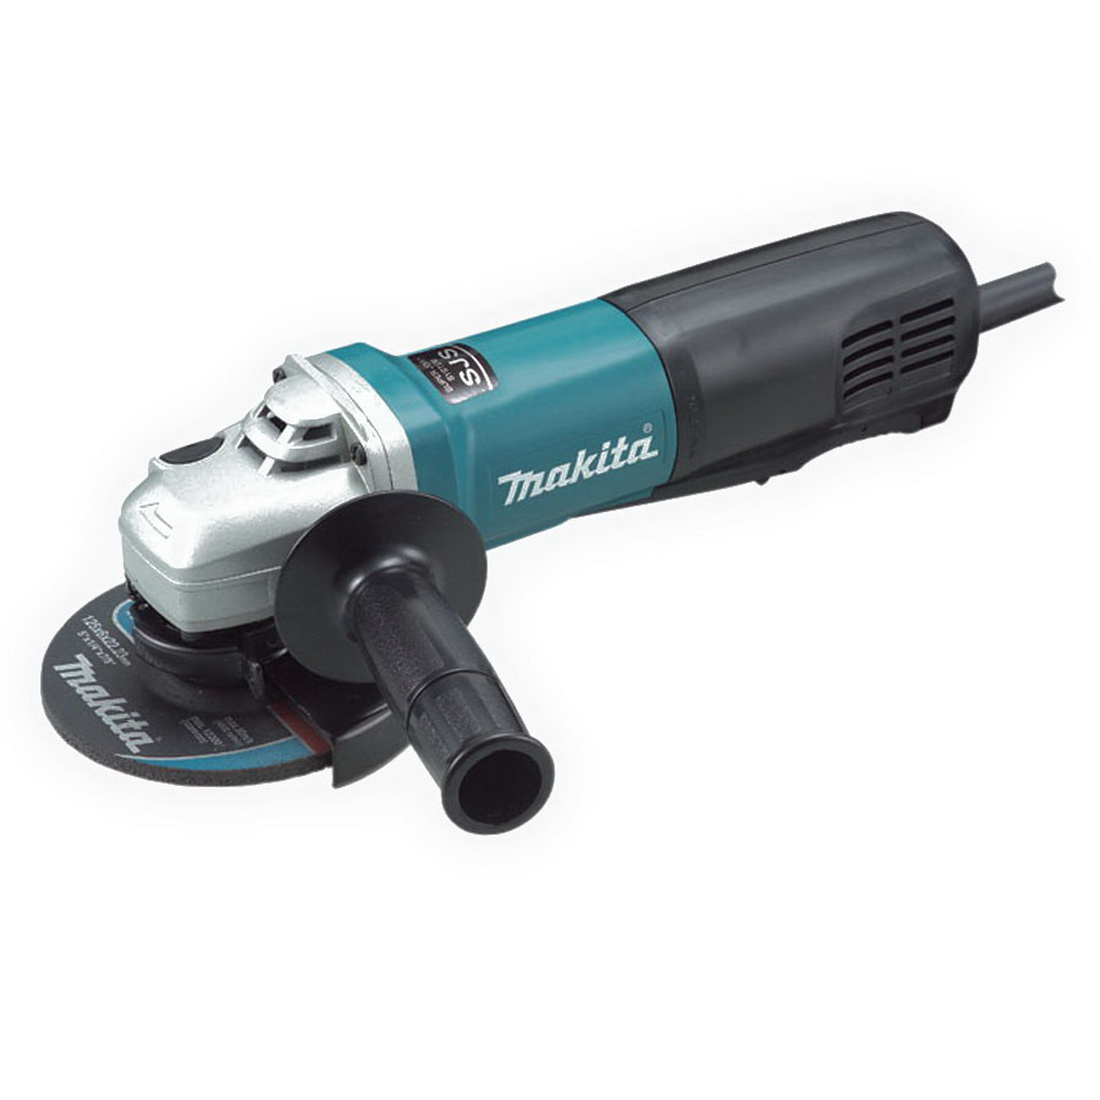 125mm Angle Grinder With Paddle Switch